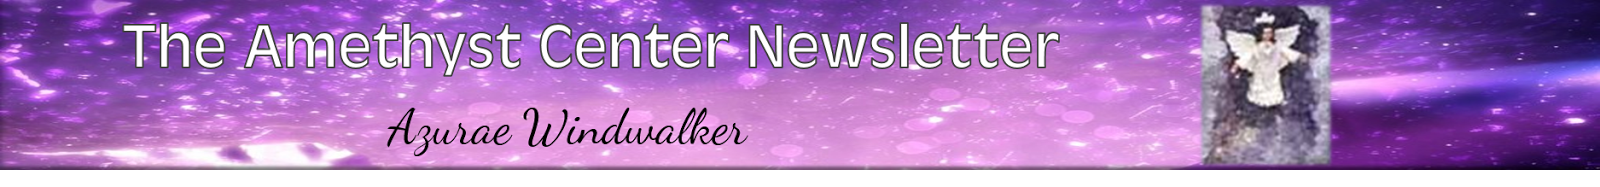 The Amethyst Center Newsletter